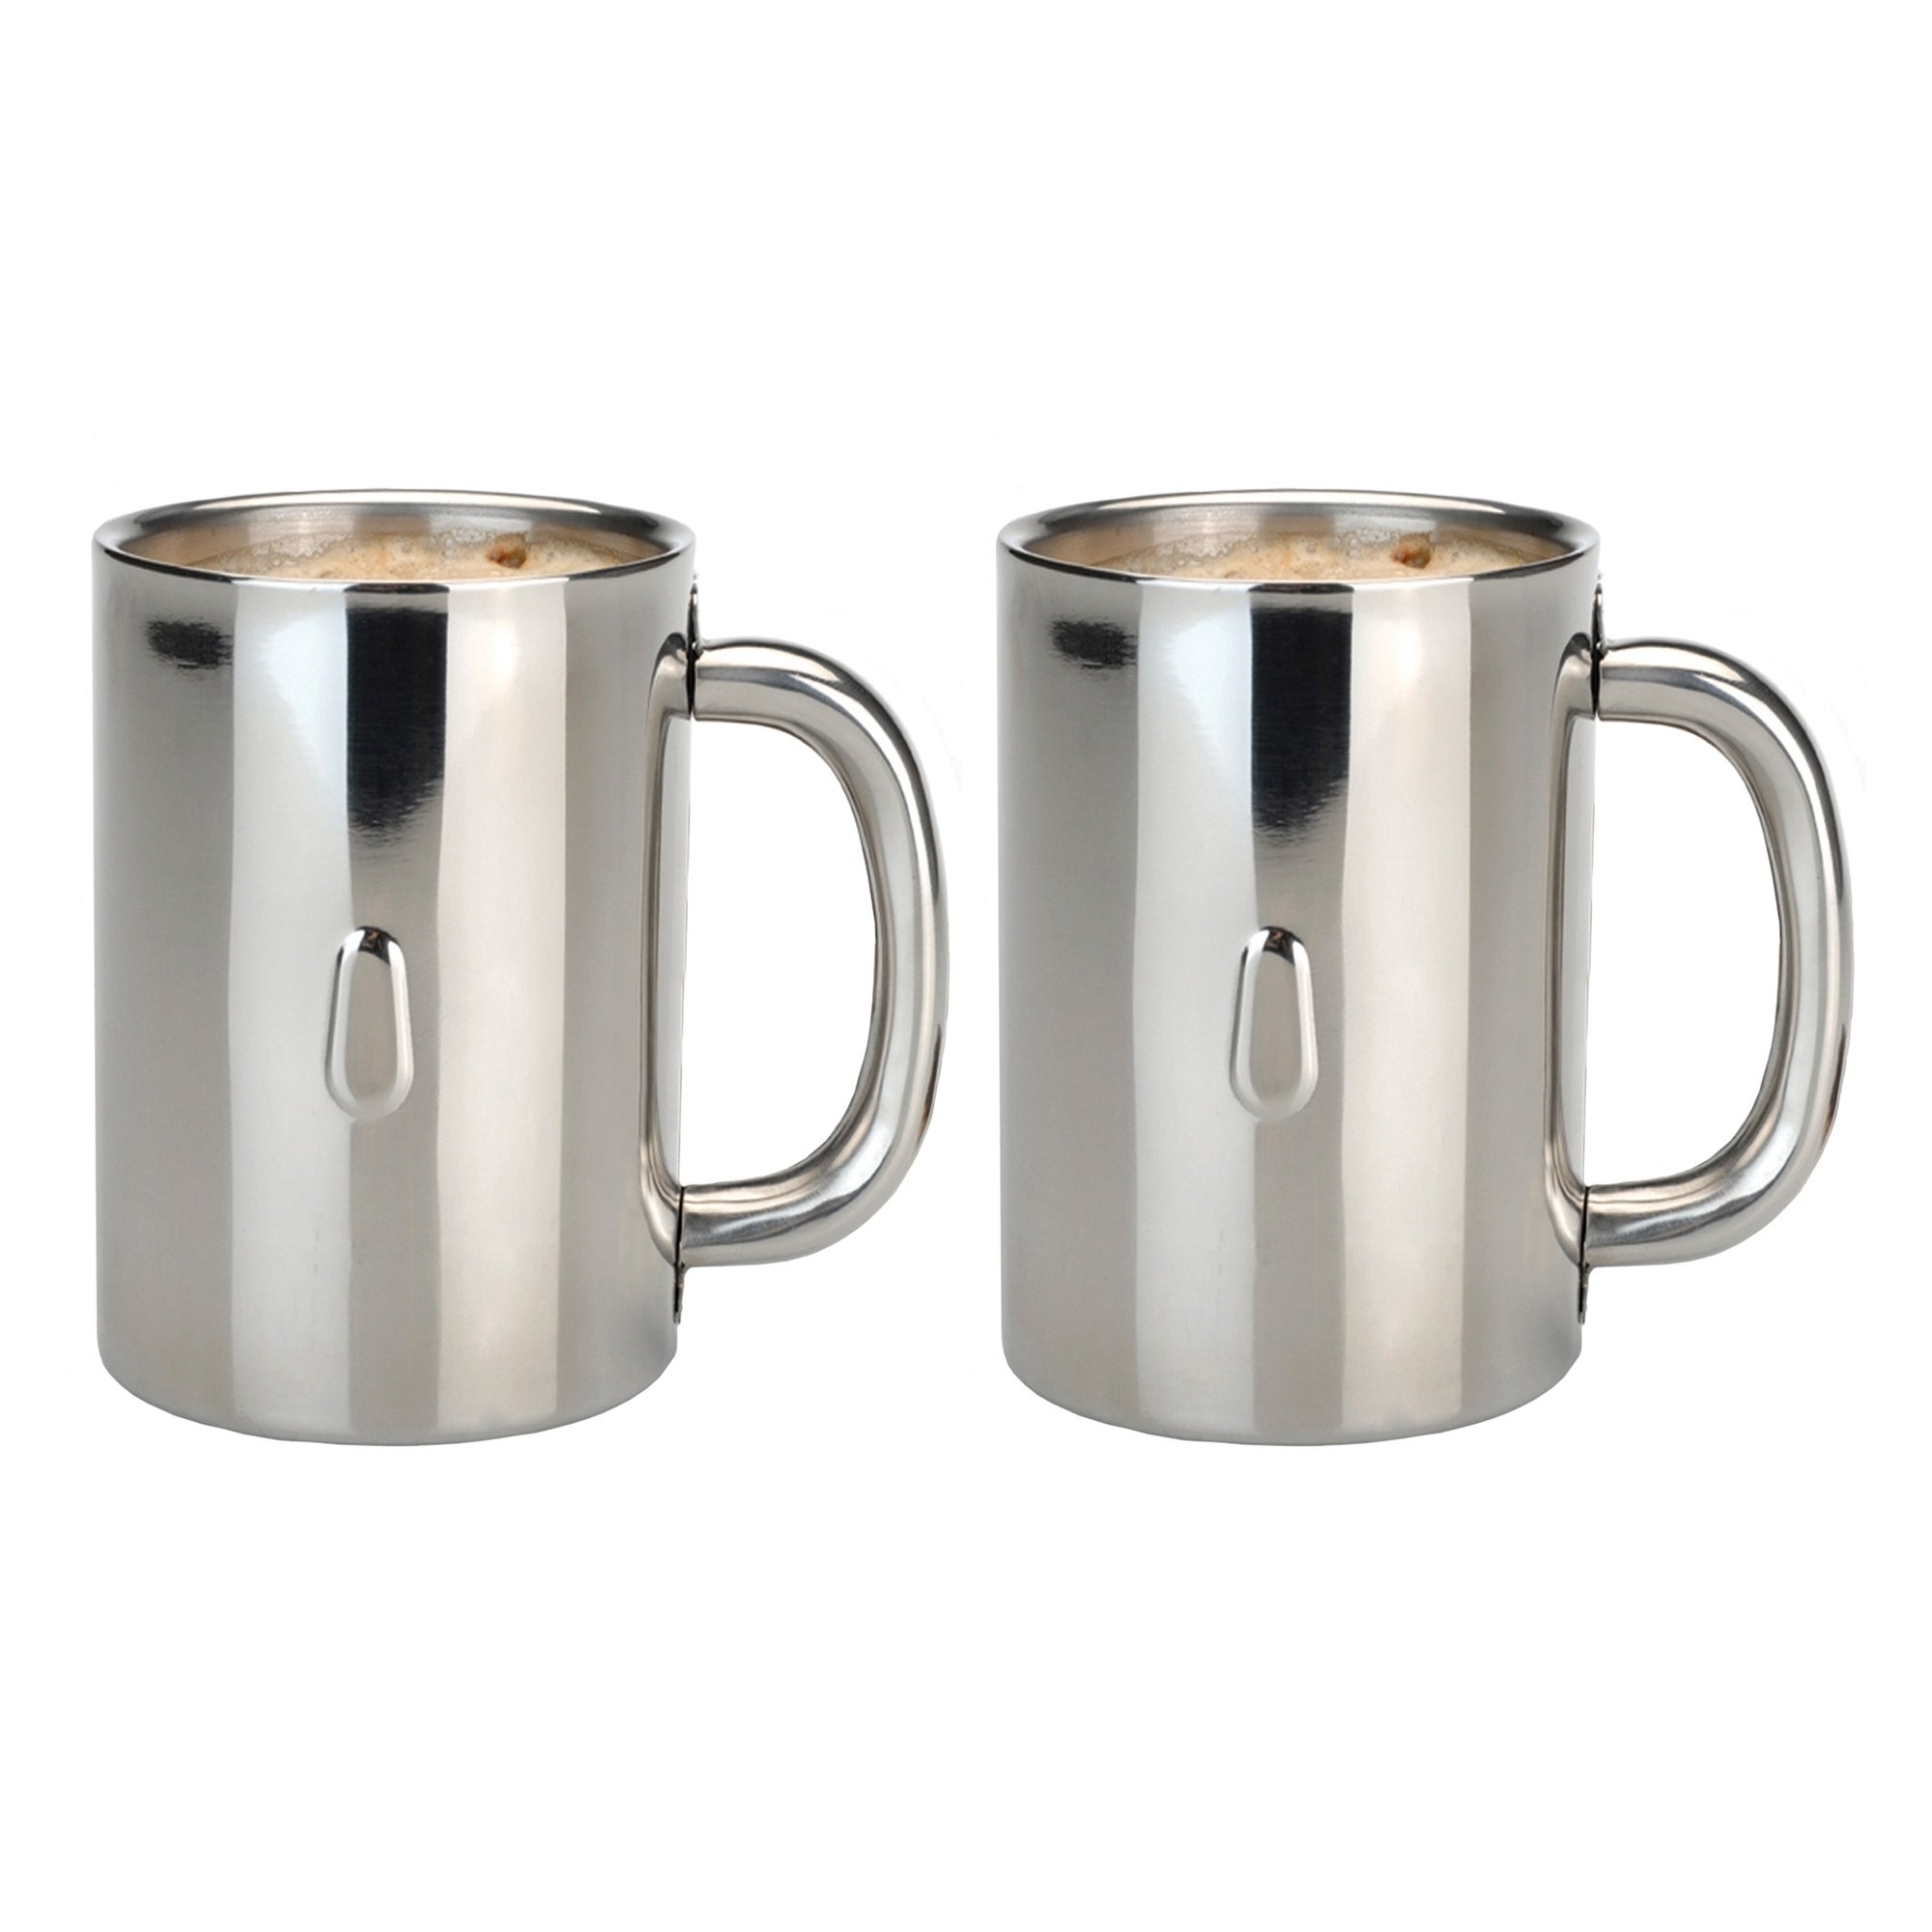 Straight 2pc Ss Coffee Mug Set Free Shipping On Orders Over 45 16765714